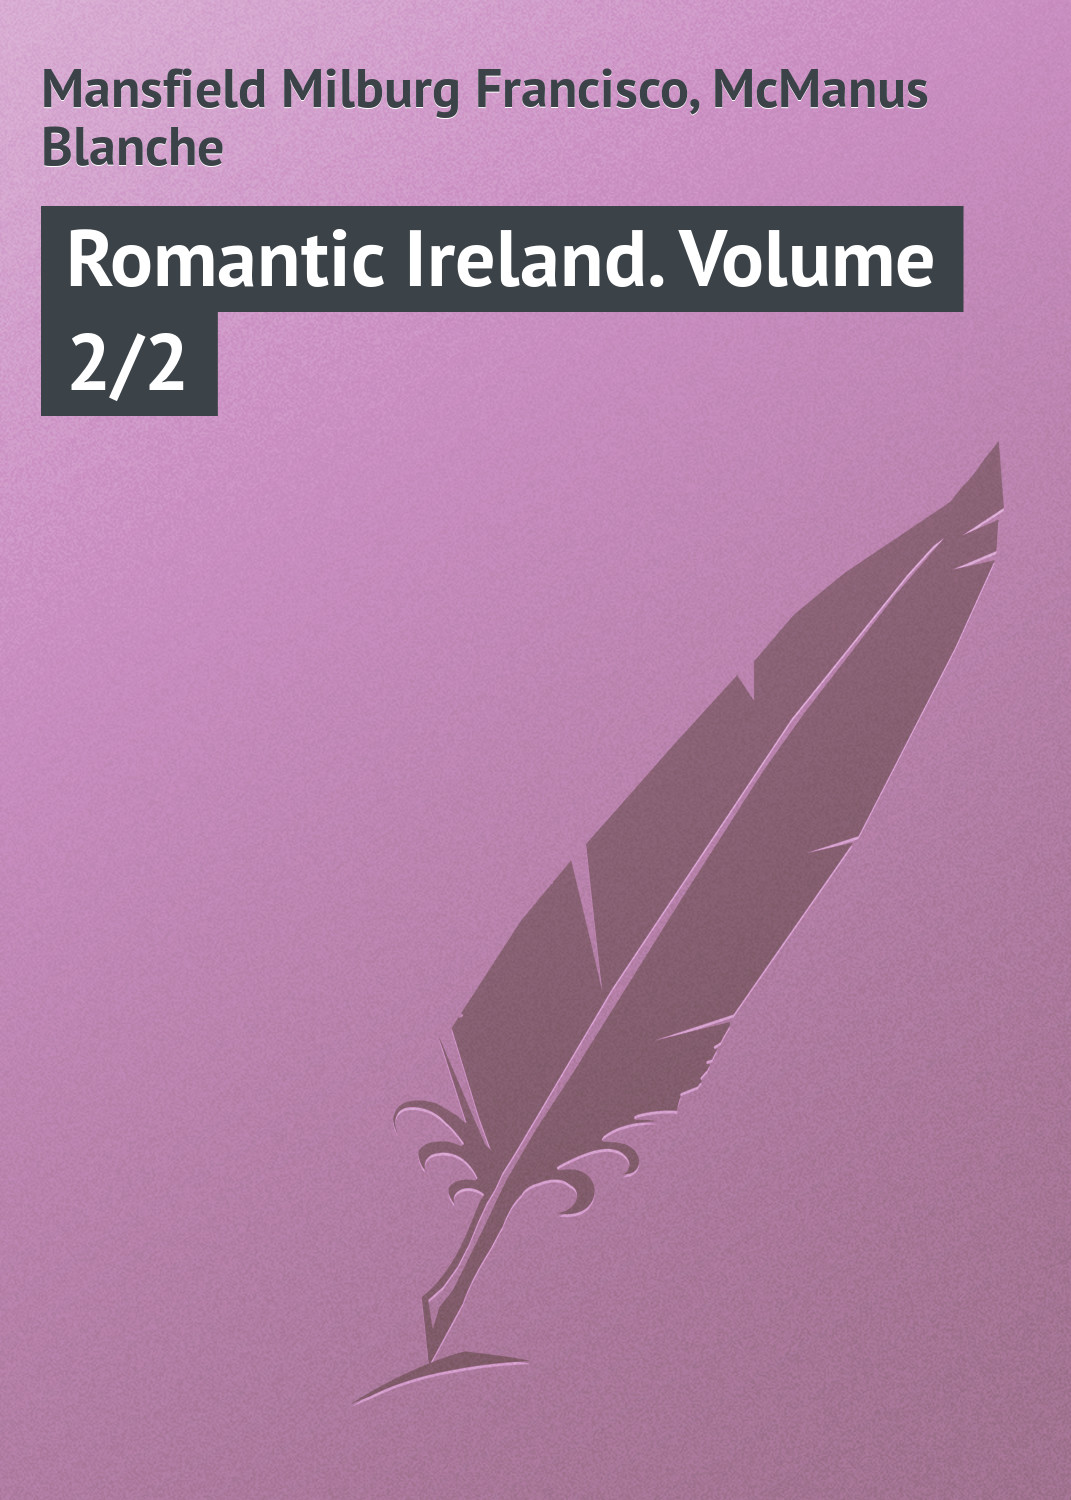 Mansfield Milburg Francisco Romantic Ireland. Volume 2/2 charmed volume 2